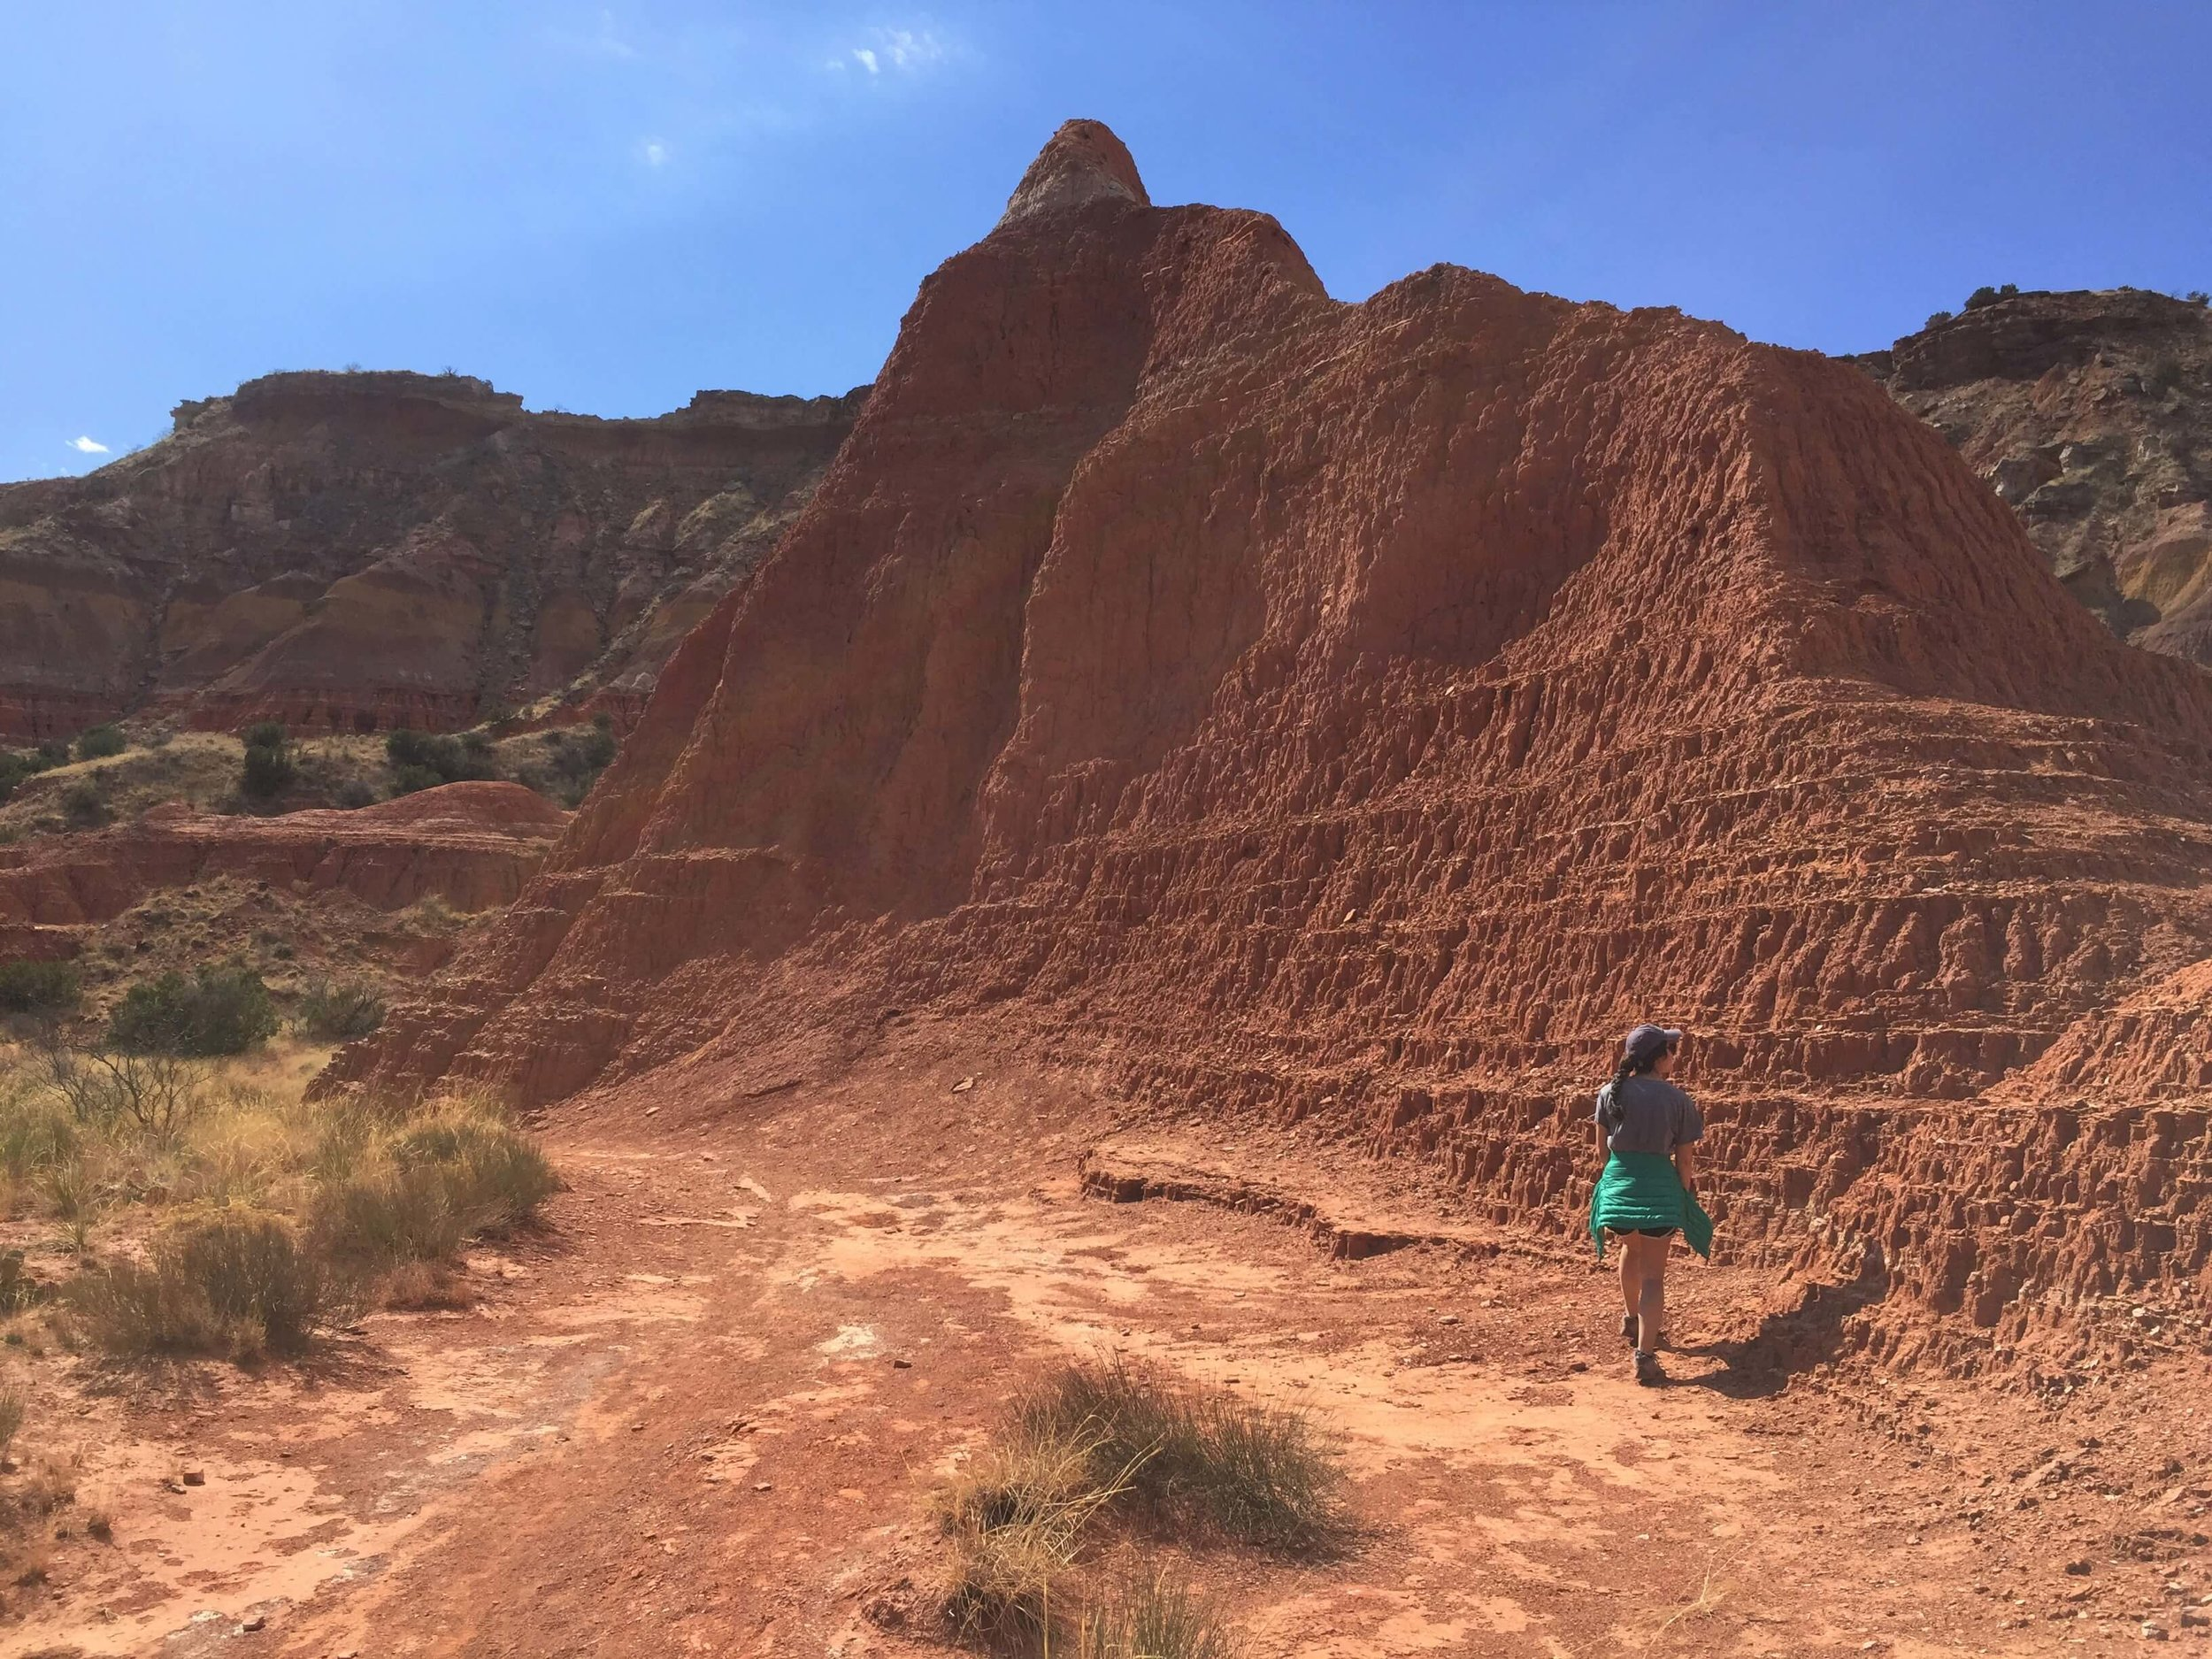 Hiking in Palo Duro Canyon State Park